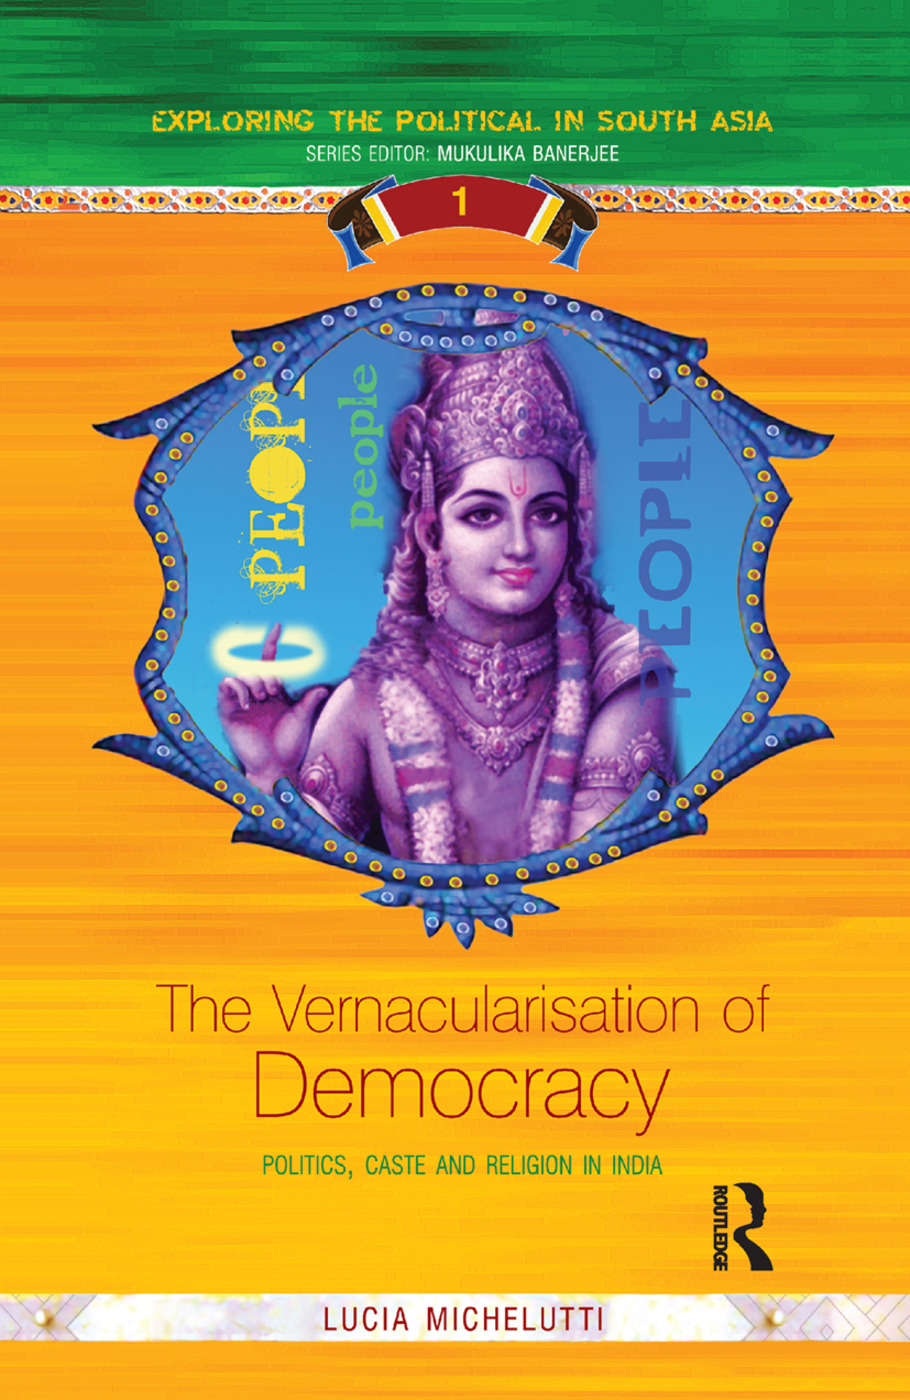 The Vernacularisation of Democracy: Politics, Caste and Religion in India book cover